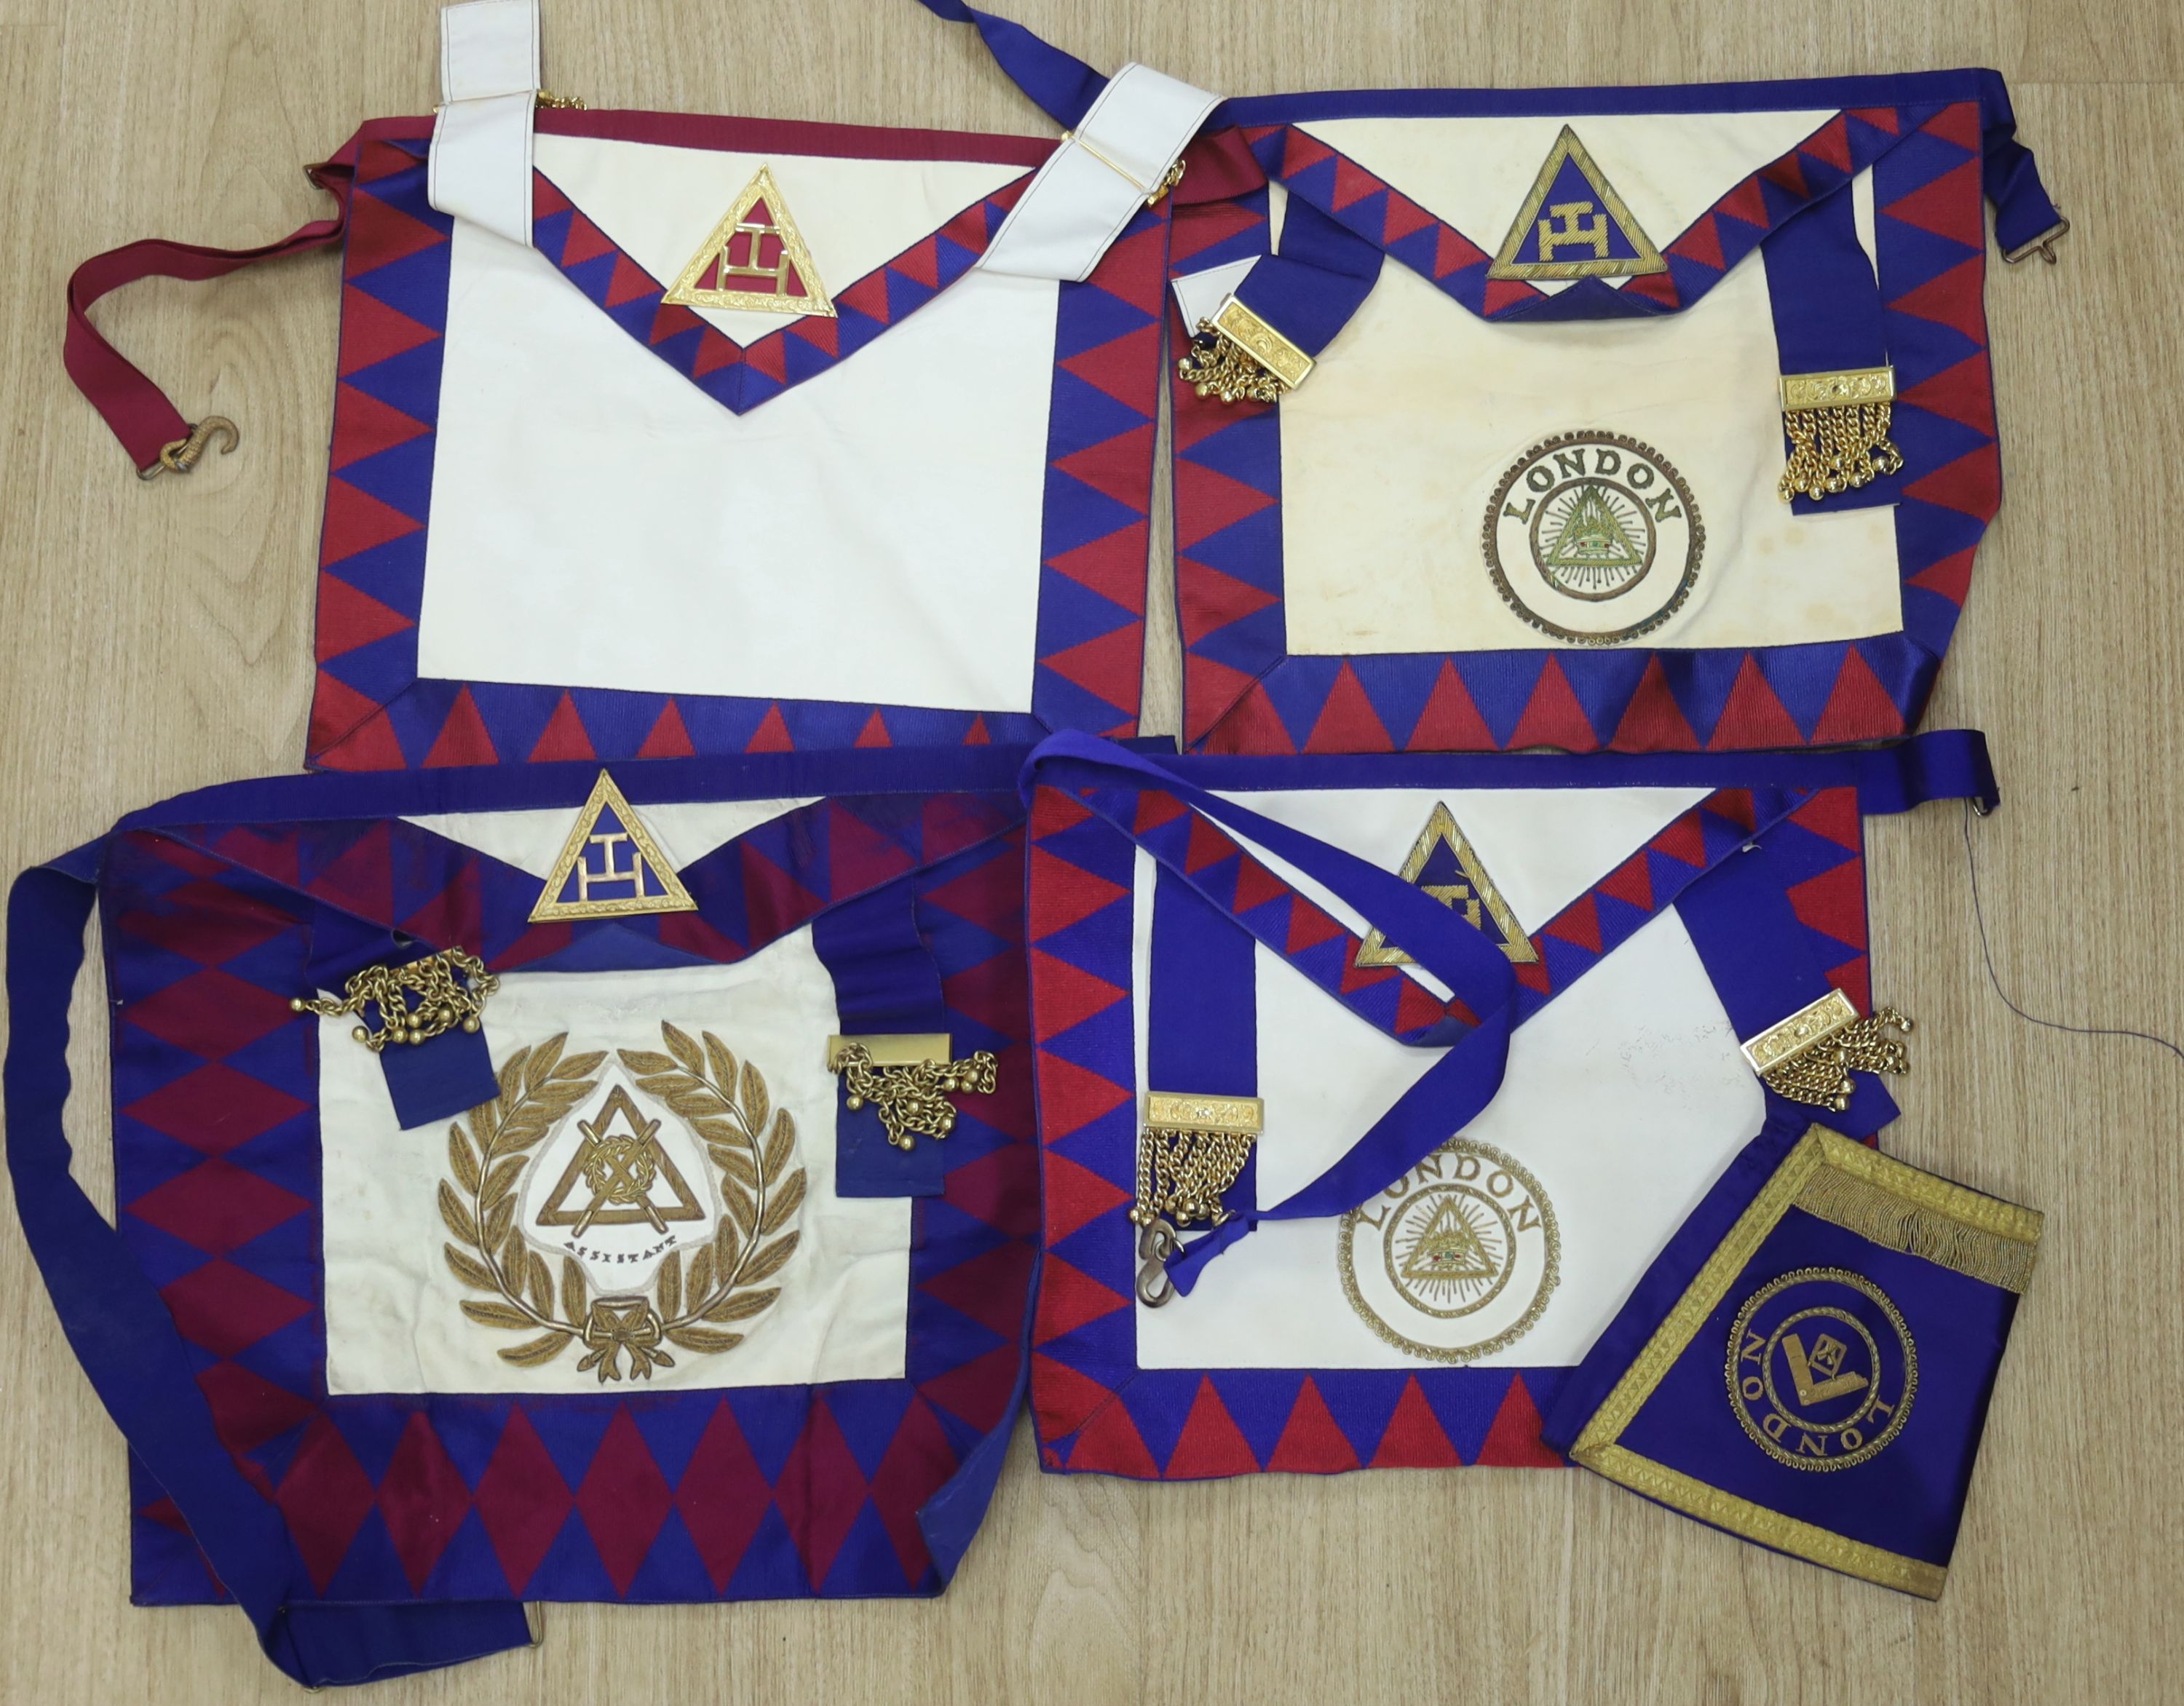 A large collection of Masonic aprons and sashes for London, etc. - Image 2 of 4